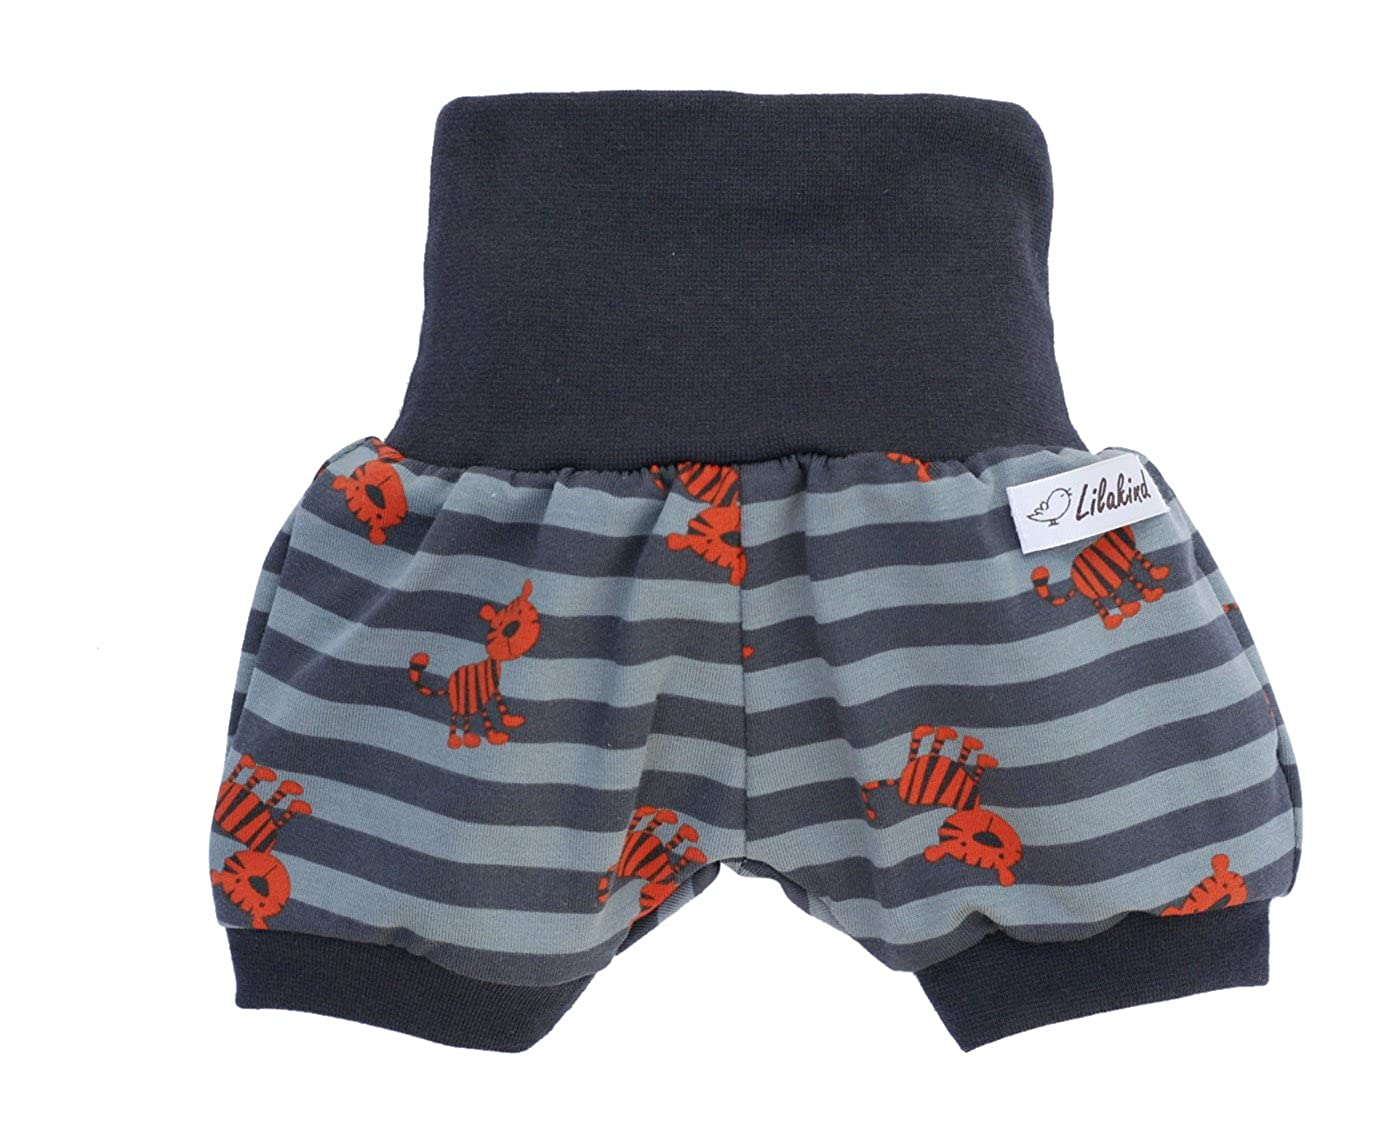 Lilakind Kurze Jungen Pumphose Shorts Buxe Sommerhose Gestreift Tiger - Made in Germany